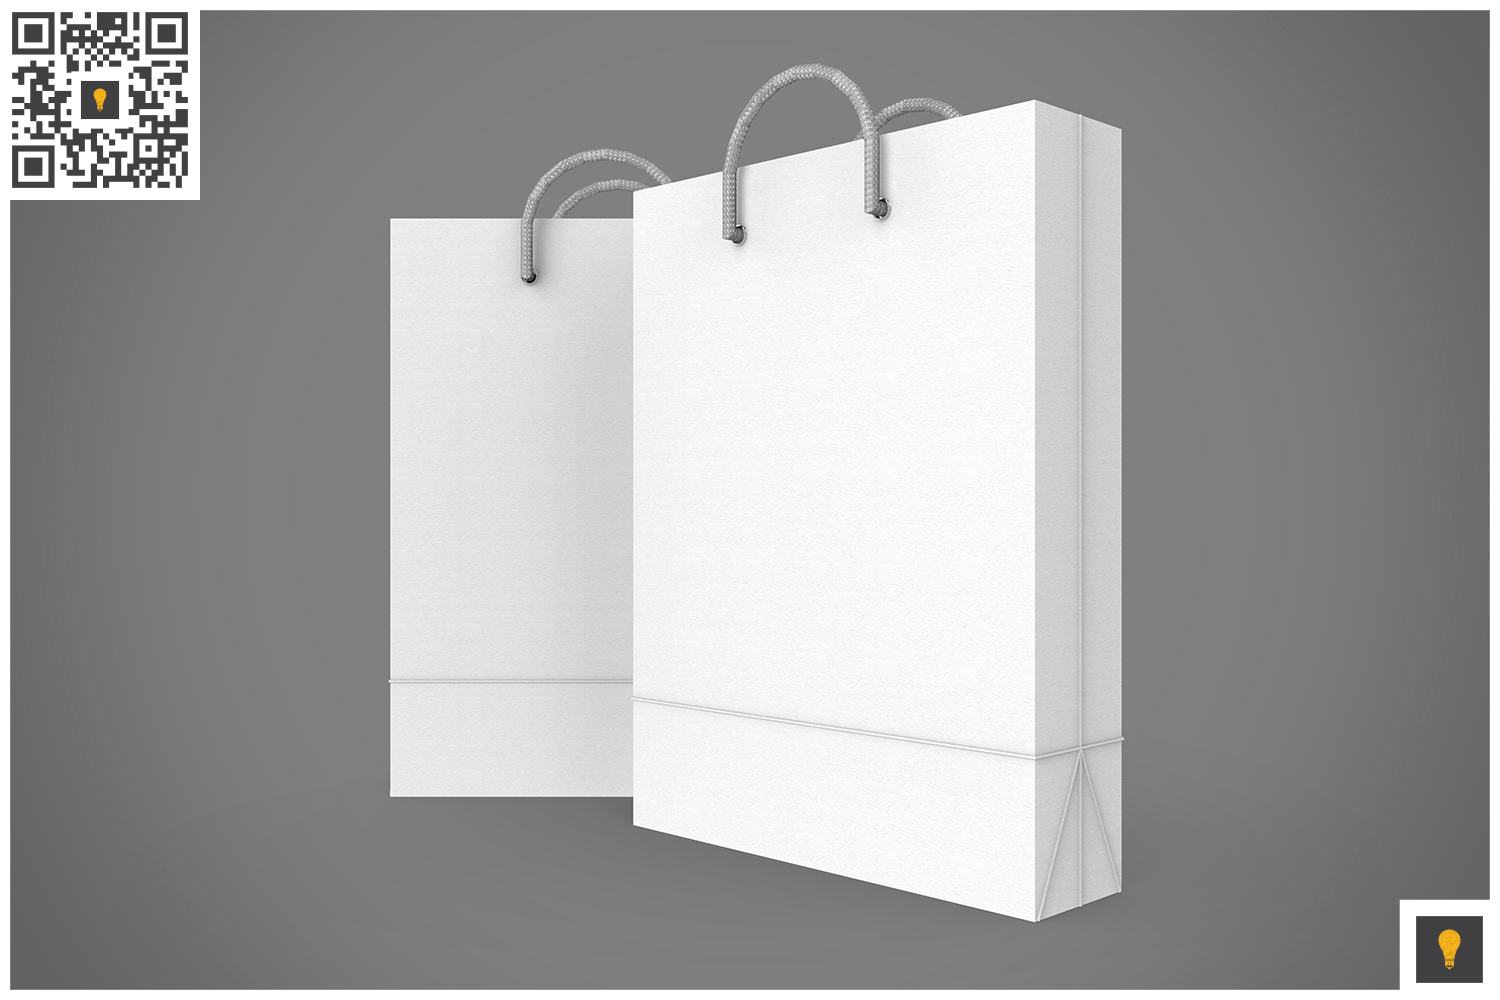 Shopping Bag 3D Render example image 2